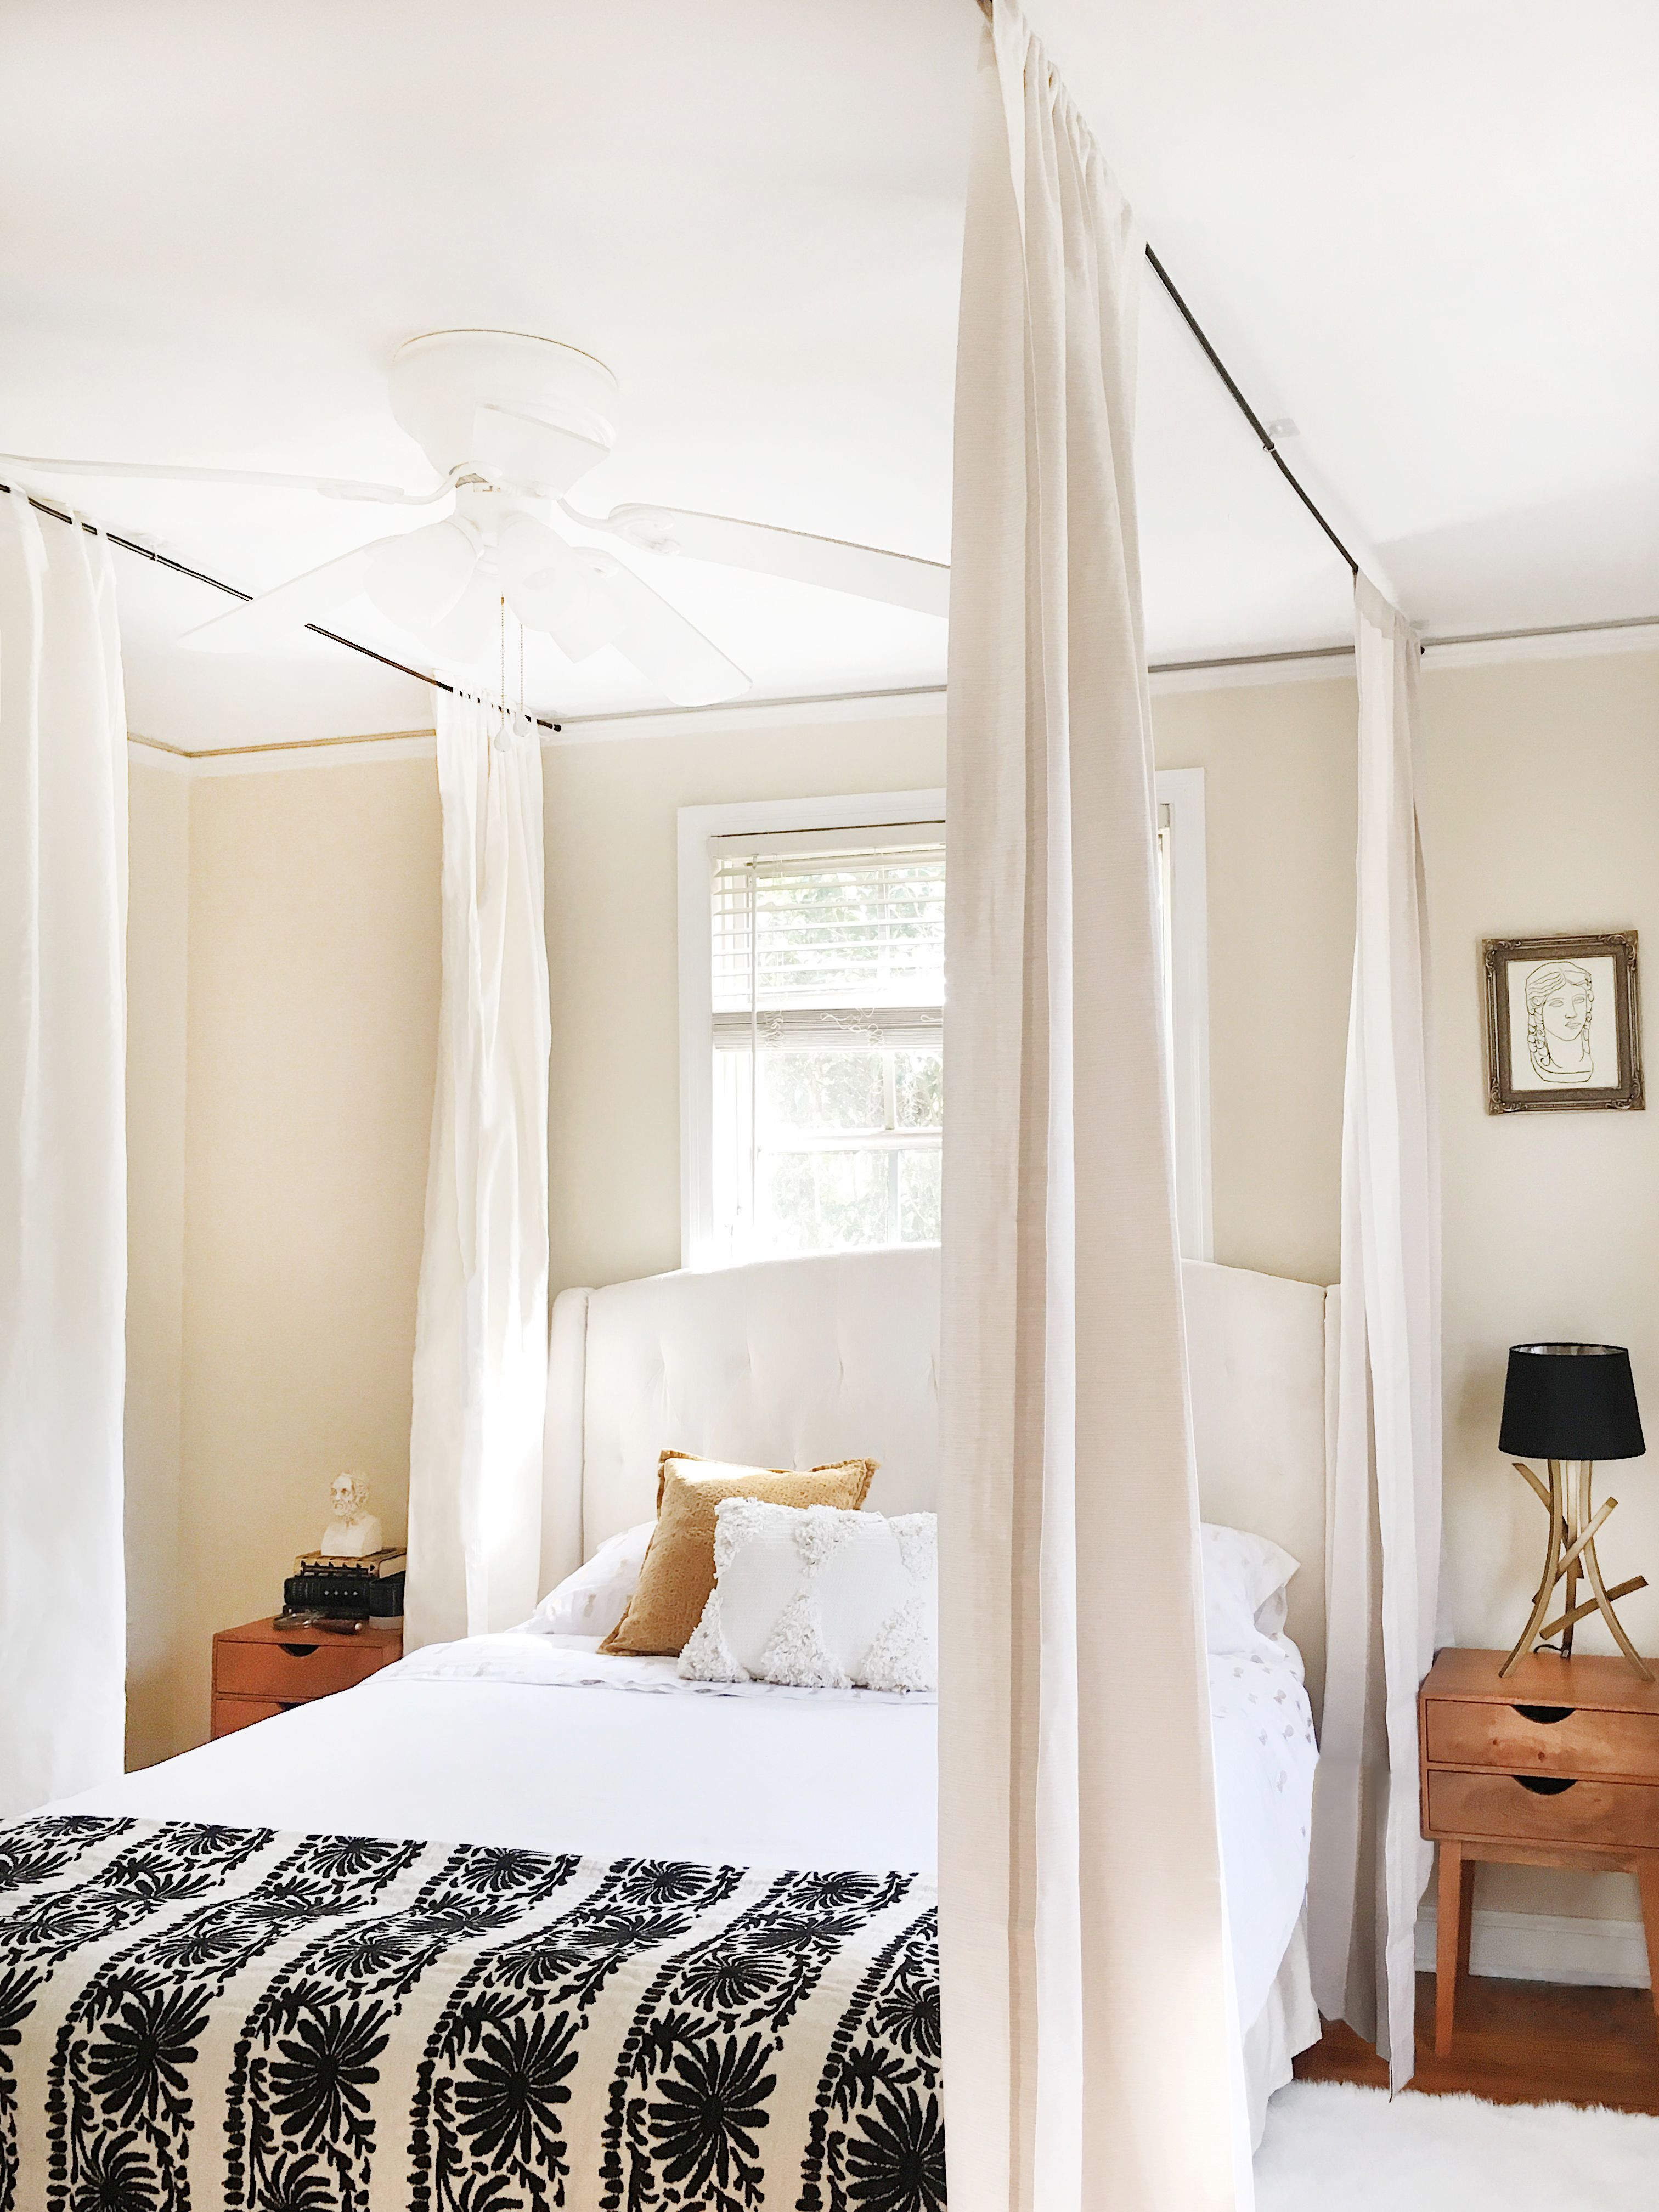 - How To Hang A Canopy From The Ceiling Without Drilling Holes